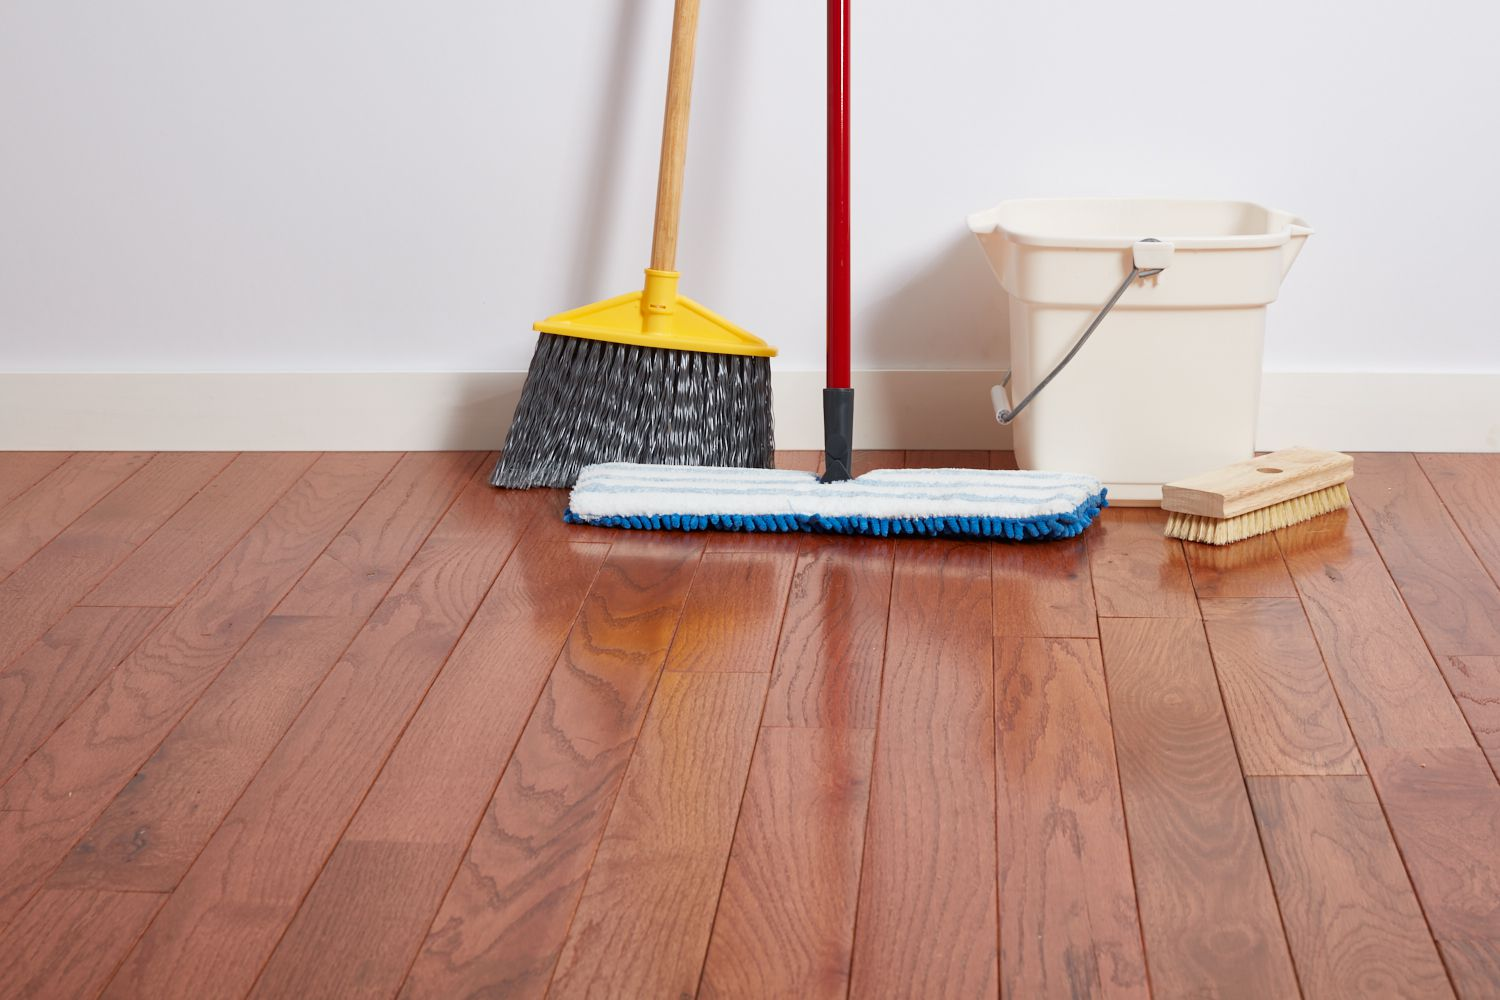 Cleaning supplies for wood floor